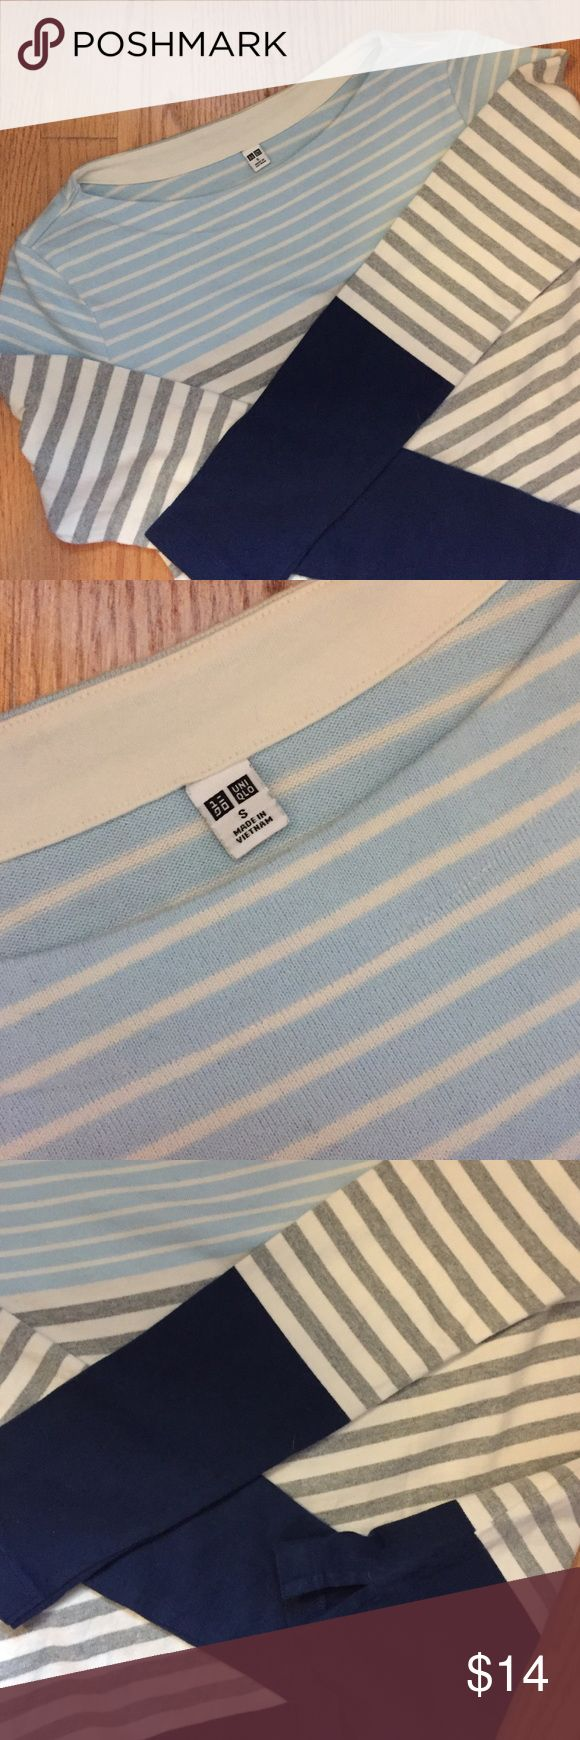 Uniqlo striped shirt Fresh and stylish 100% cotton striped long sleeve shirt. In excellent condition without any fading (purchased last winter, washed once in an effort to shrink but never worn. Sigh) Uniqlo Tops